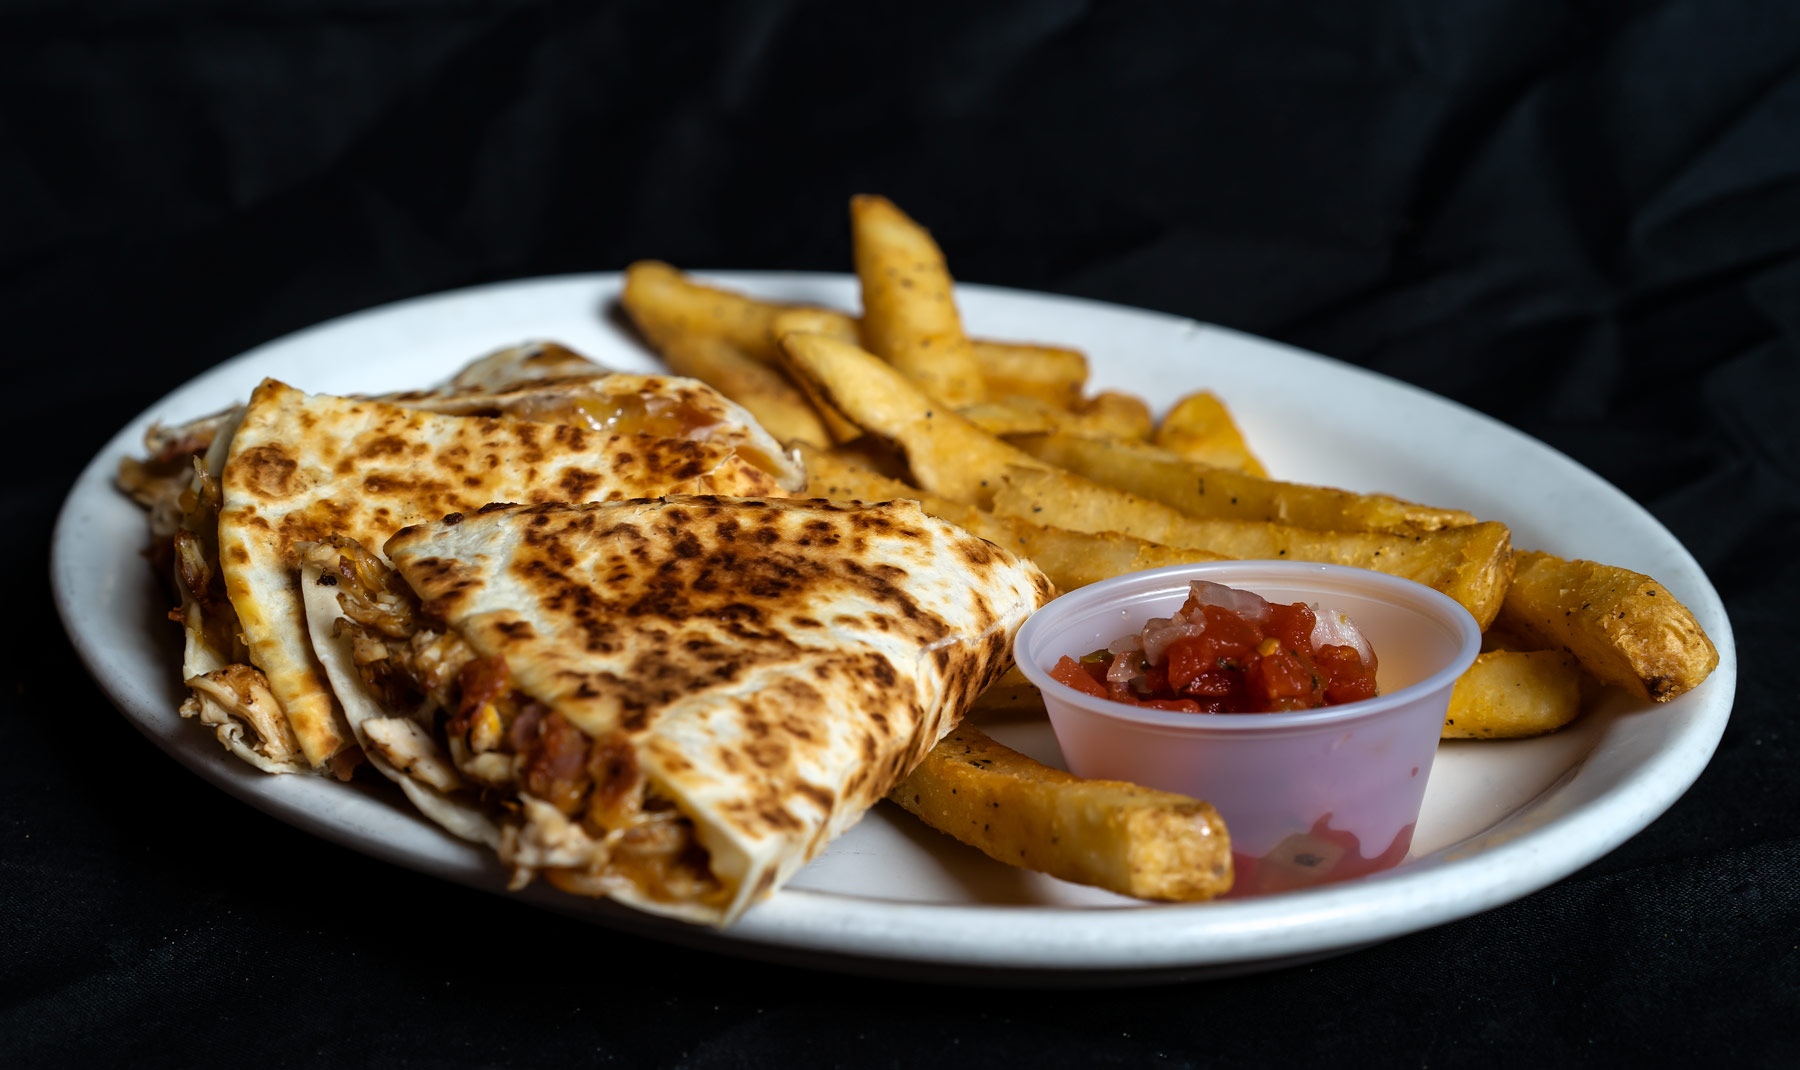 Chicken or Cheese Quesadilla Grilled Chicken breast, bacon, melted cheddar jack cheese served on a grilled flour tortilla with a side of Pico de Gallo.  Chicken 9.00 Just Cheese 7.00